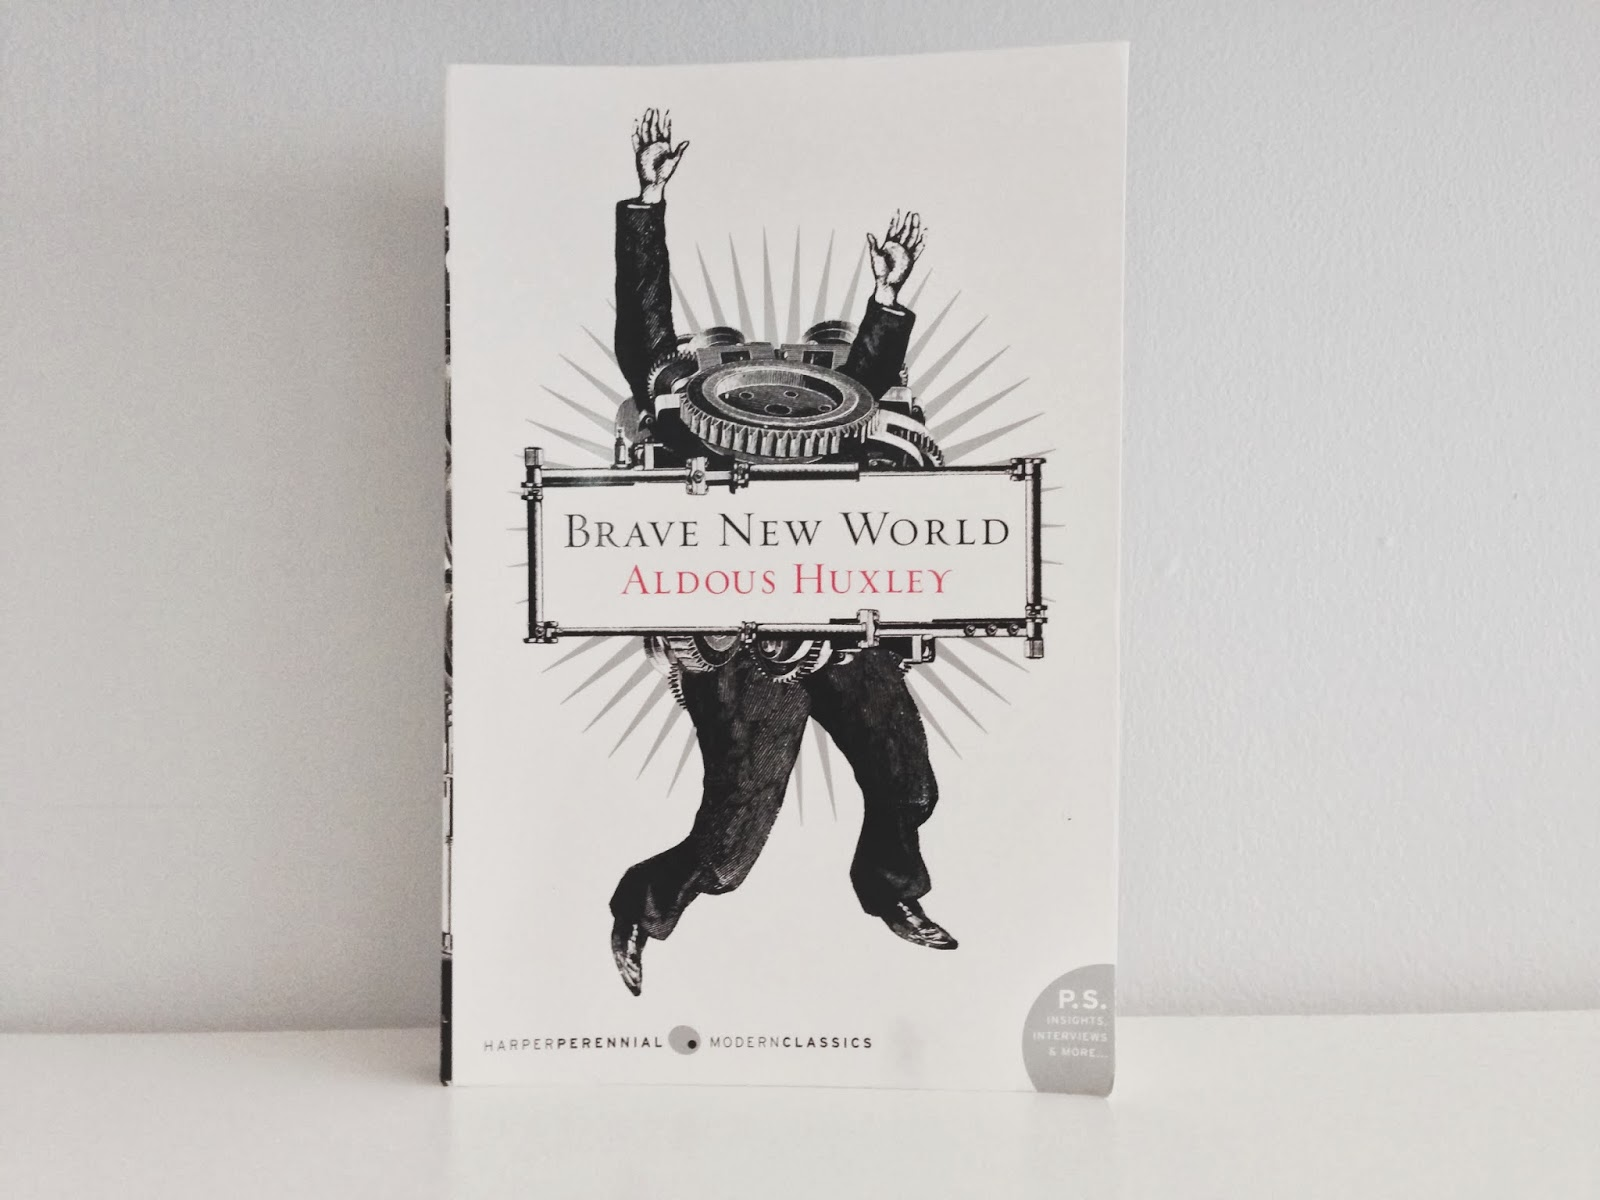 aldous huxley s brave new world and Aldous huxley's brave new world context huxley's book, brave new world, published in 1932 is giving the world, as it aldous leonard huxley was born in.